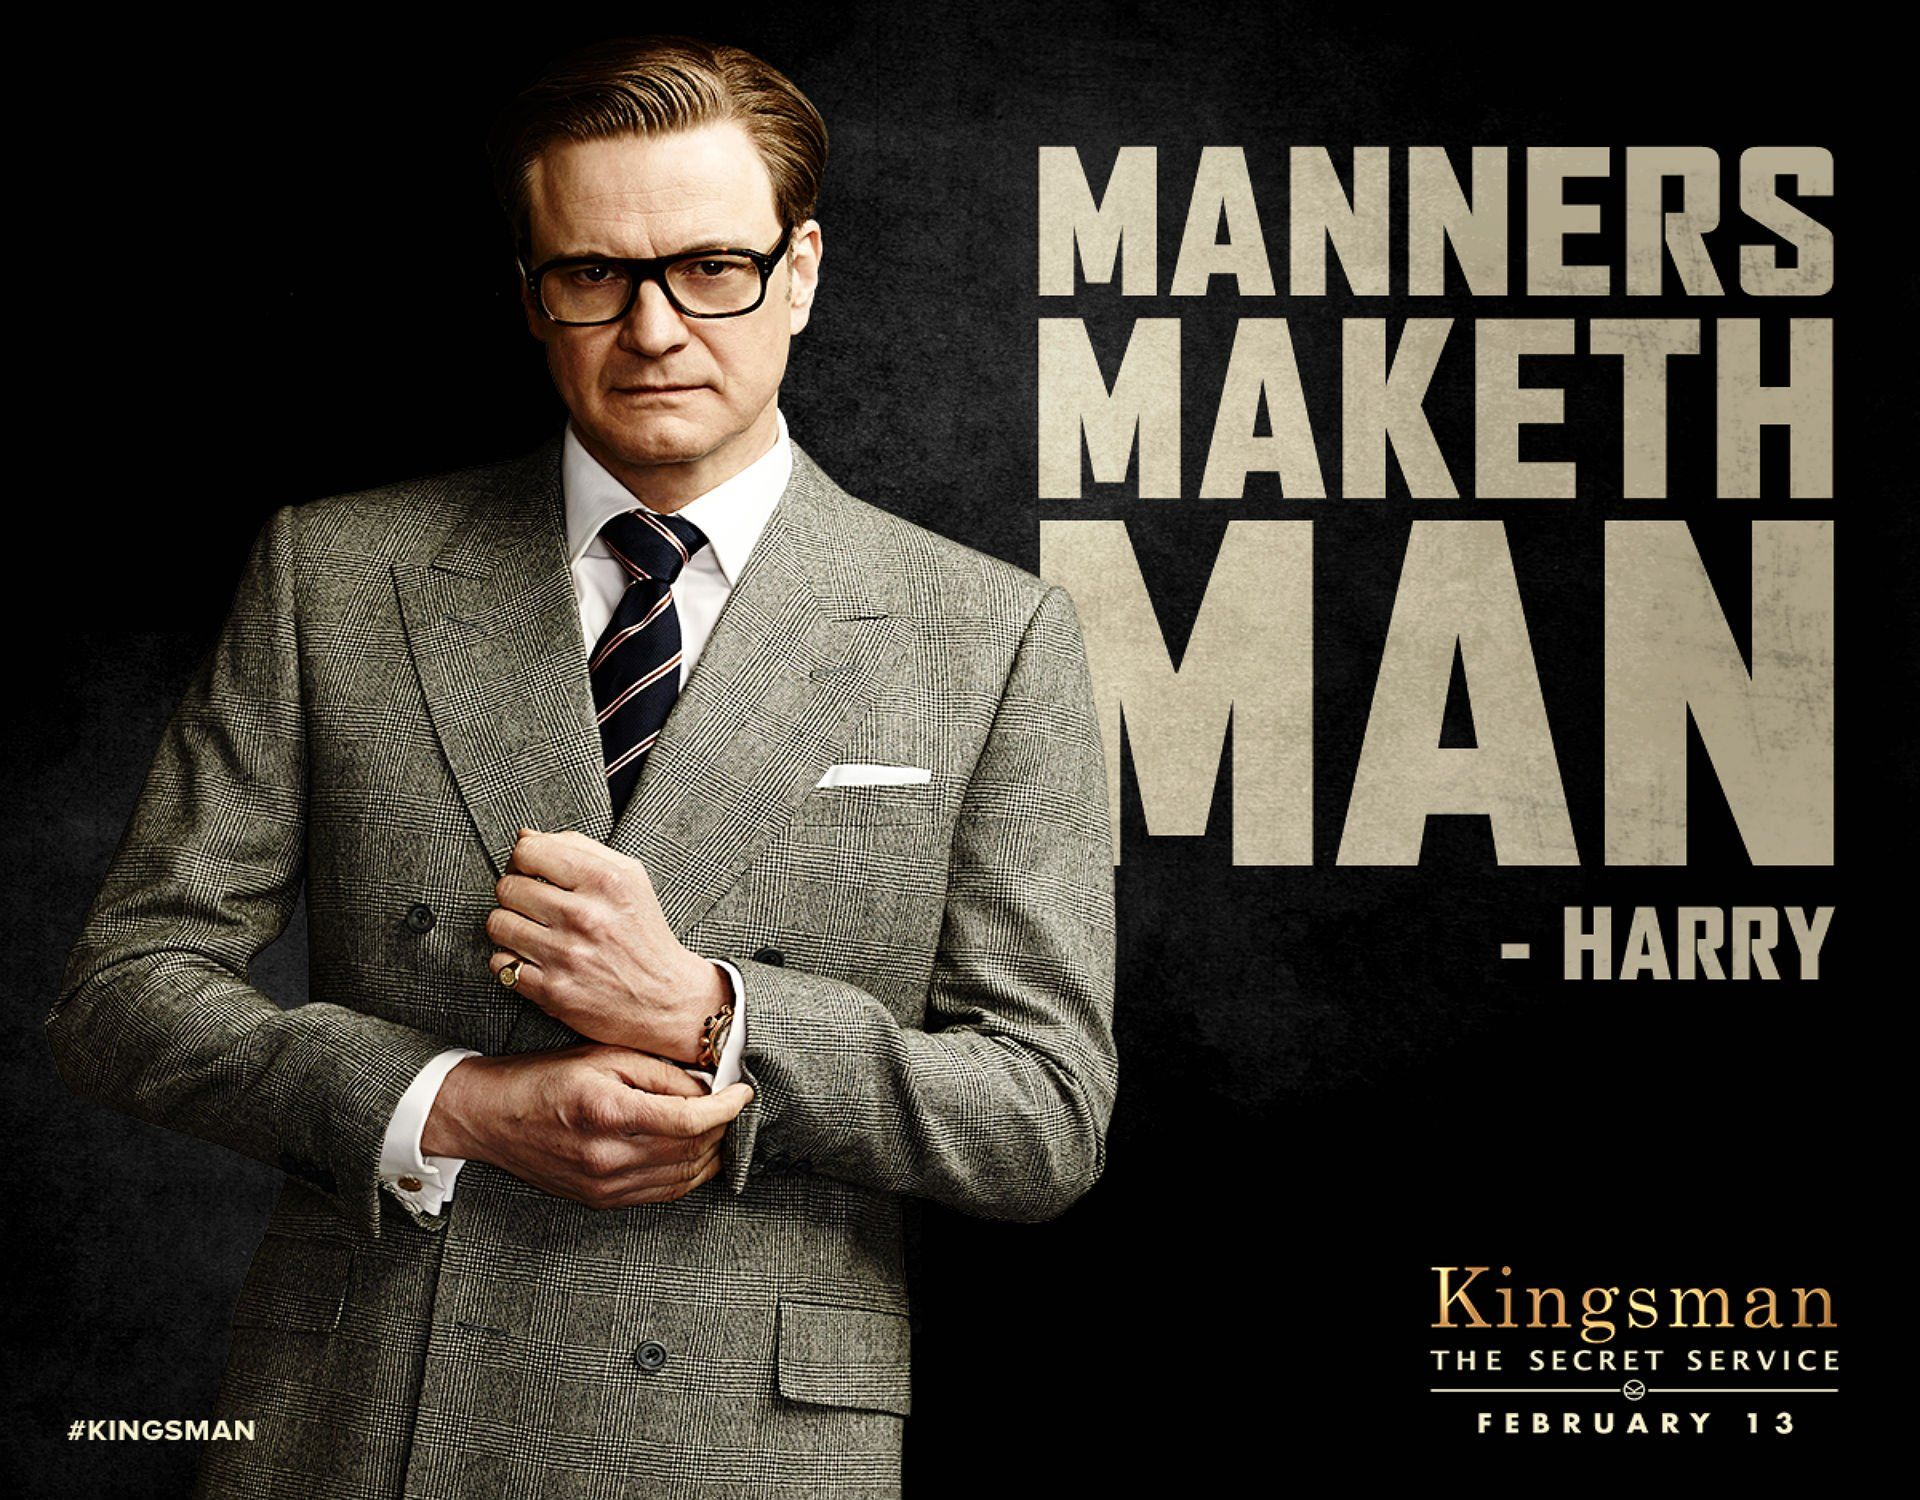 1000+ images about KINGSMAN on Pinterest | Colin firth kingsman, ...